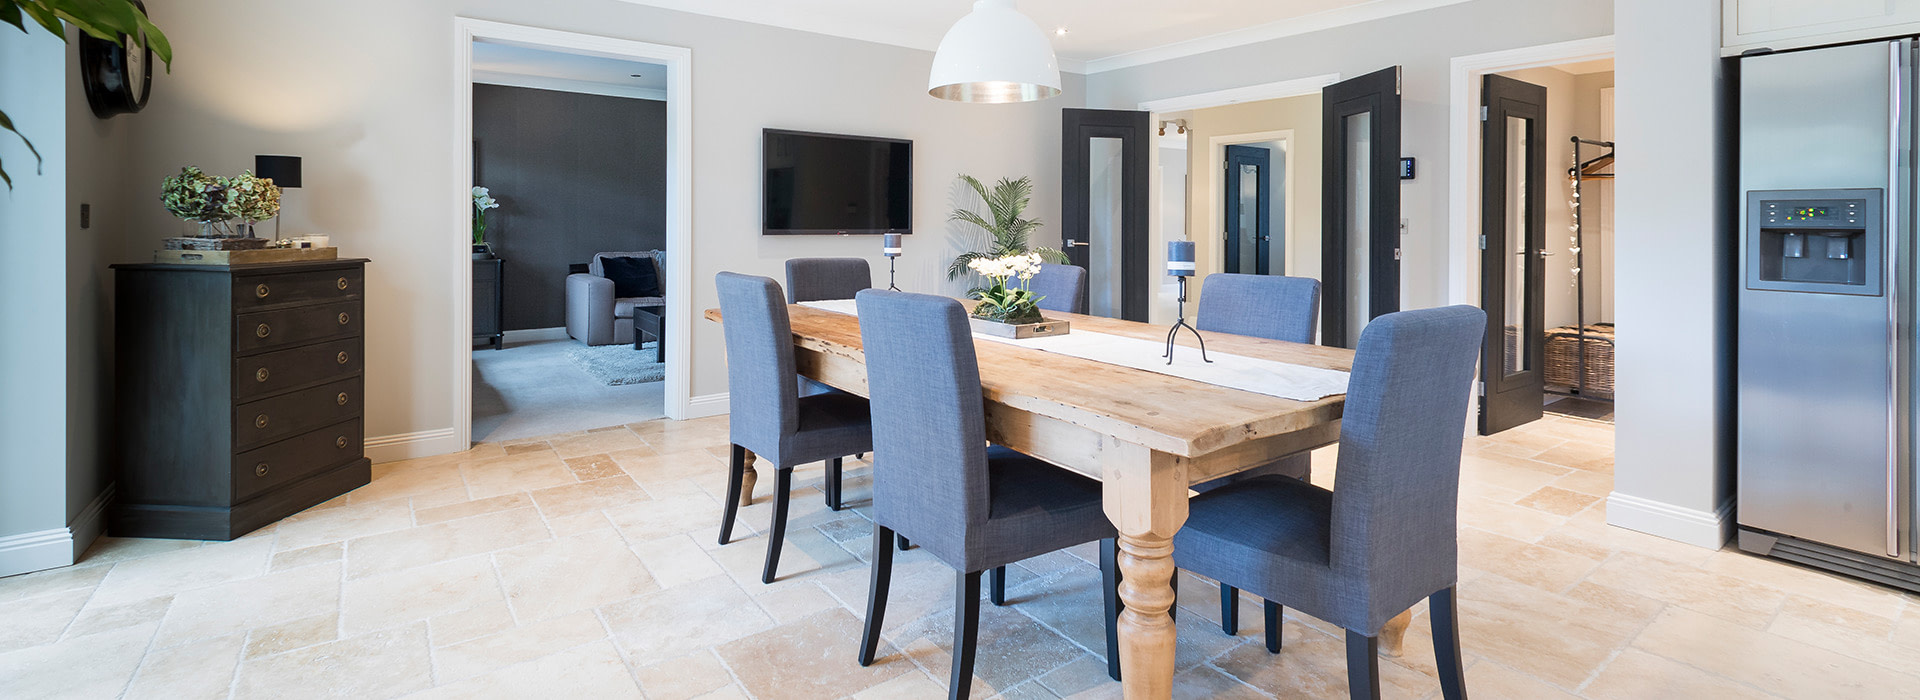 Dining room with natural stone flooring